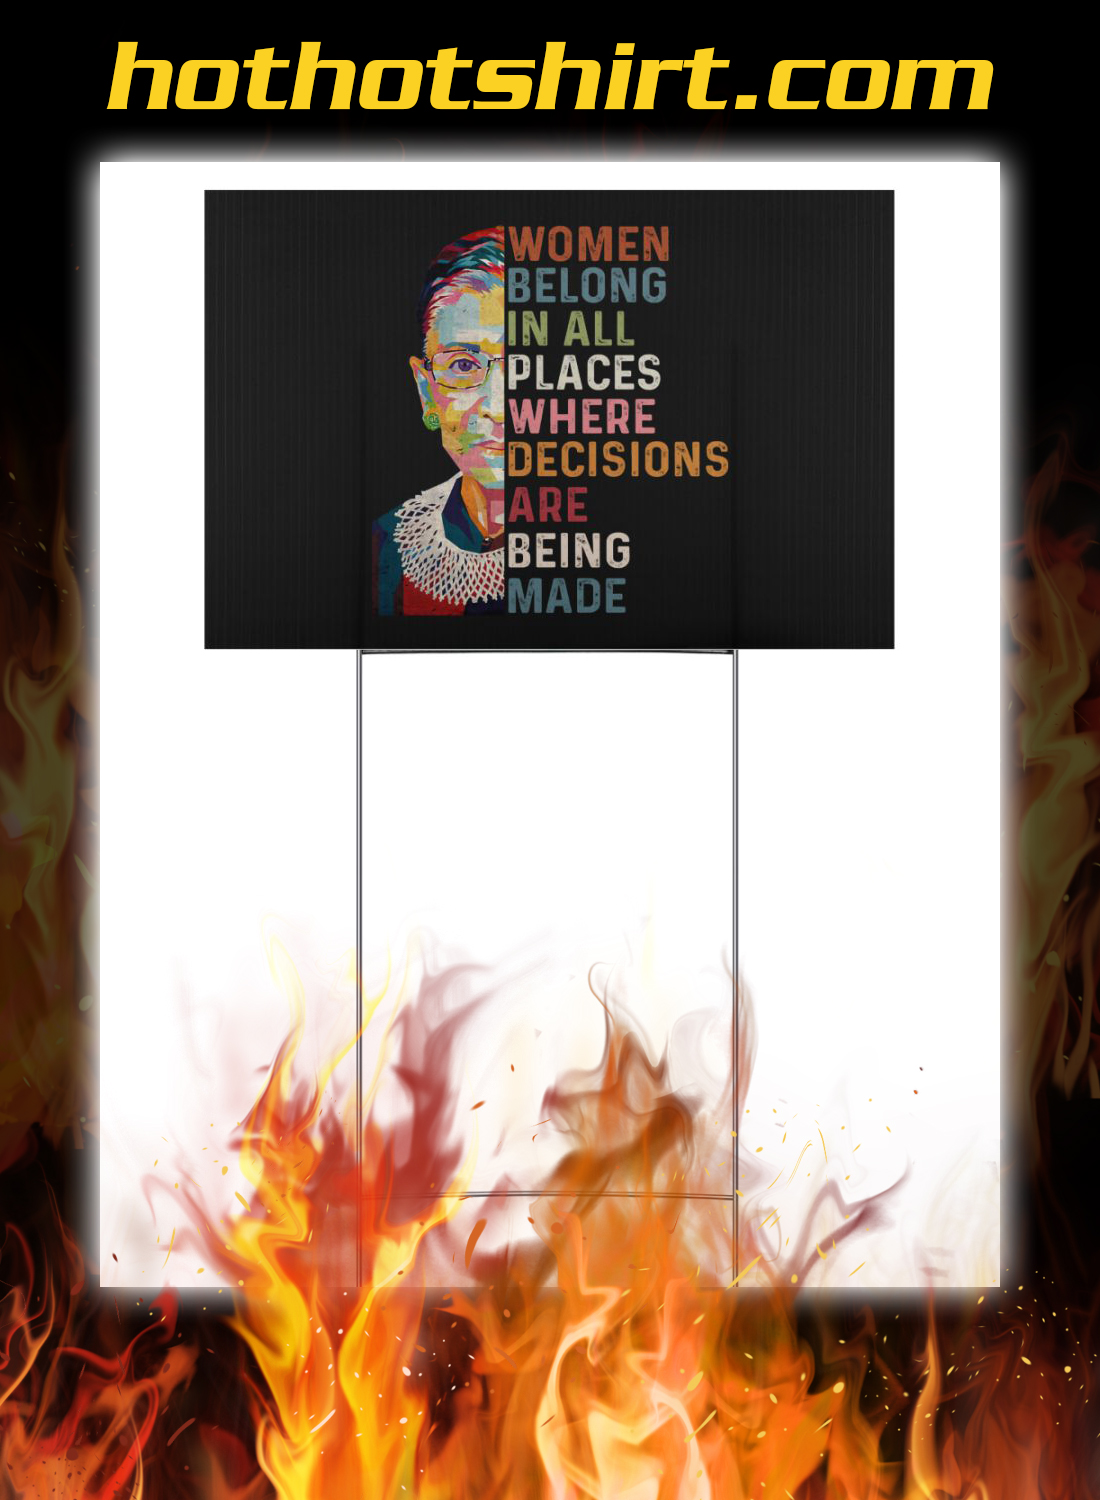 Ruth bader ginsburg women belong in all places where decisions are being made yard signs 3